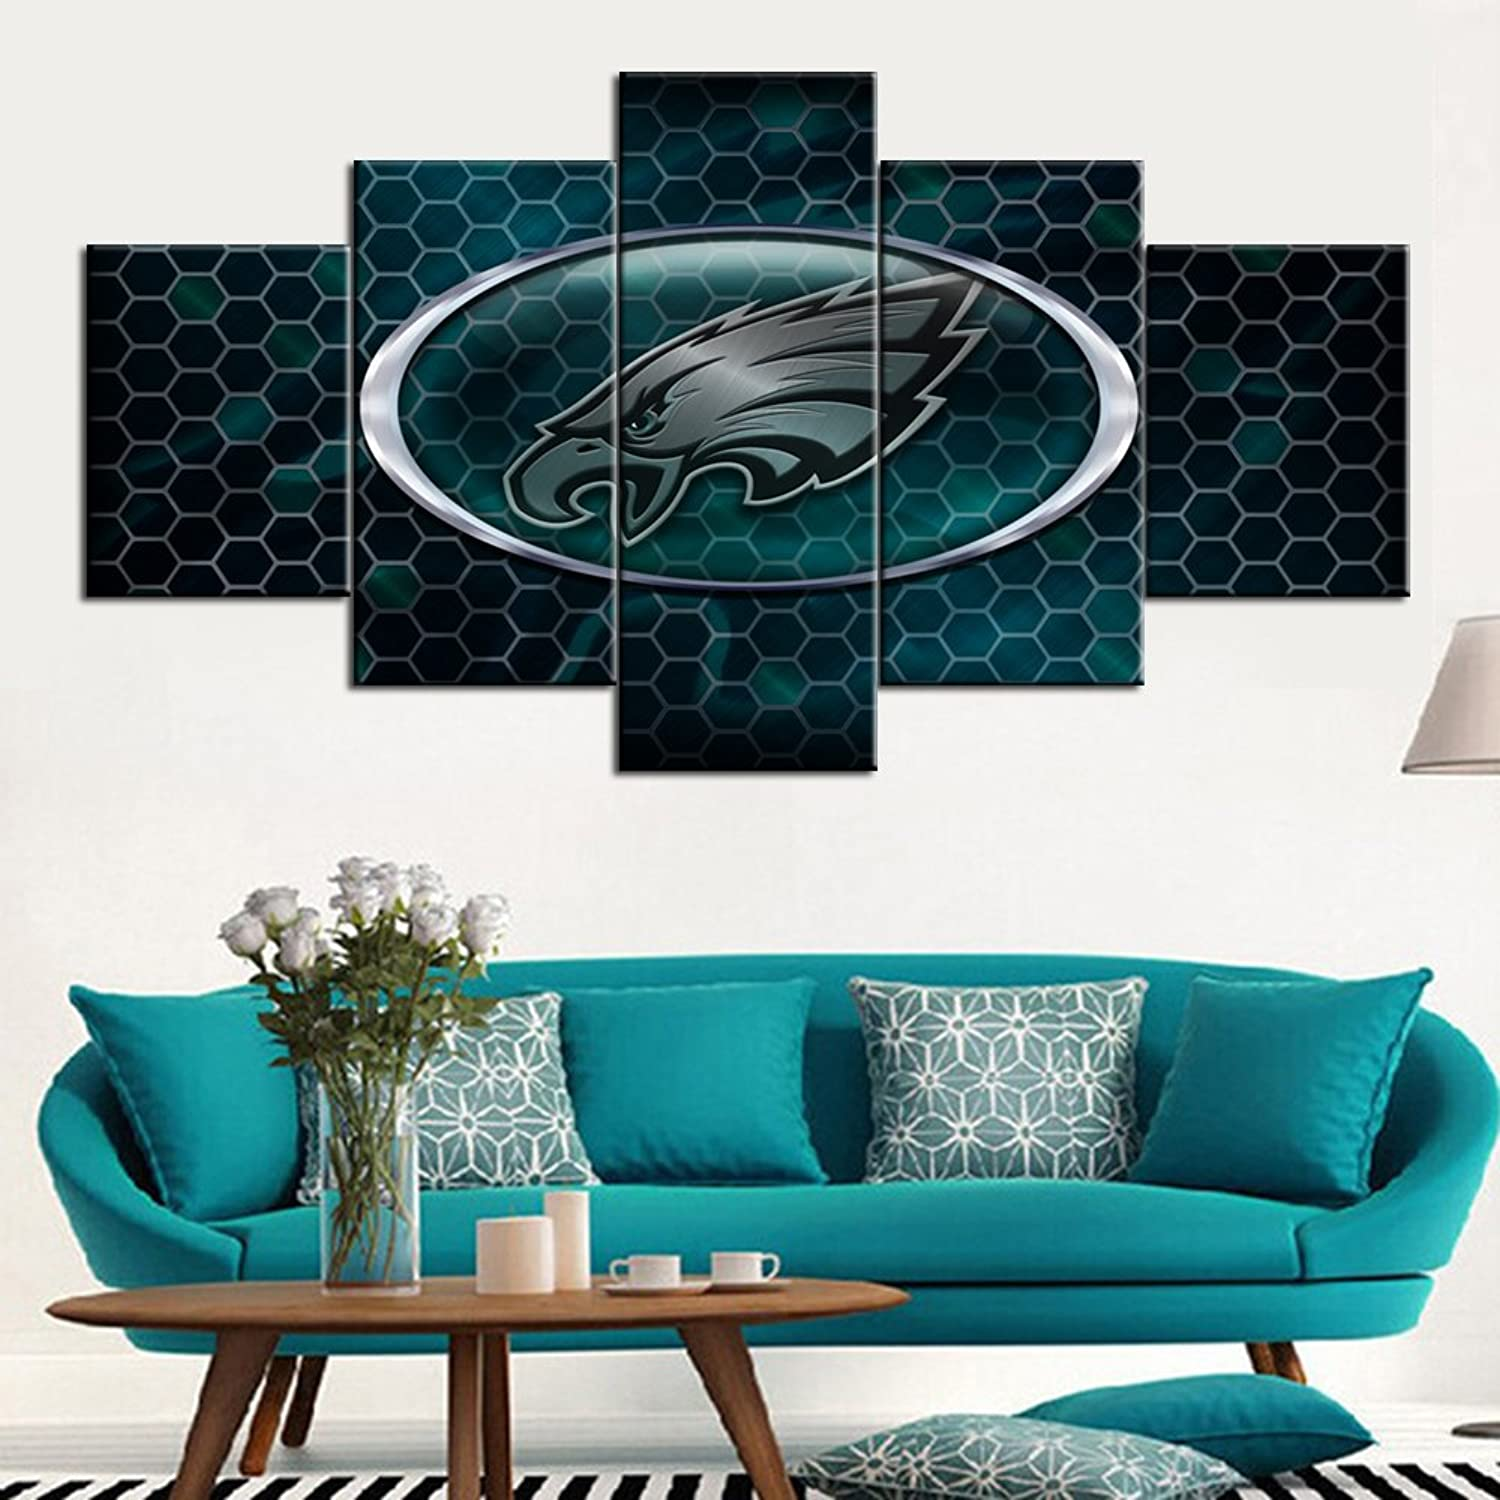 Philadelphia Eagles Canvas Wall Art Football Wall Decor Home Decor for Men Paintings Logo of NFL Superbowl 2018 Champion Pictures 5 Piece Artwork for Living Room Framed Ready to Hang(60''Wx32''H)